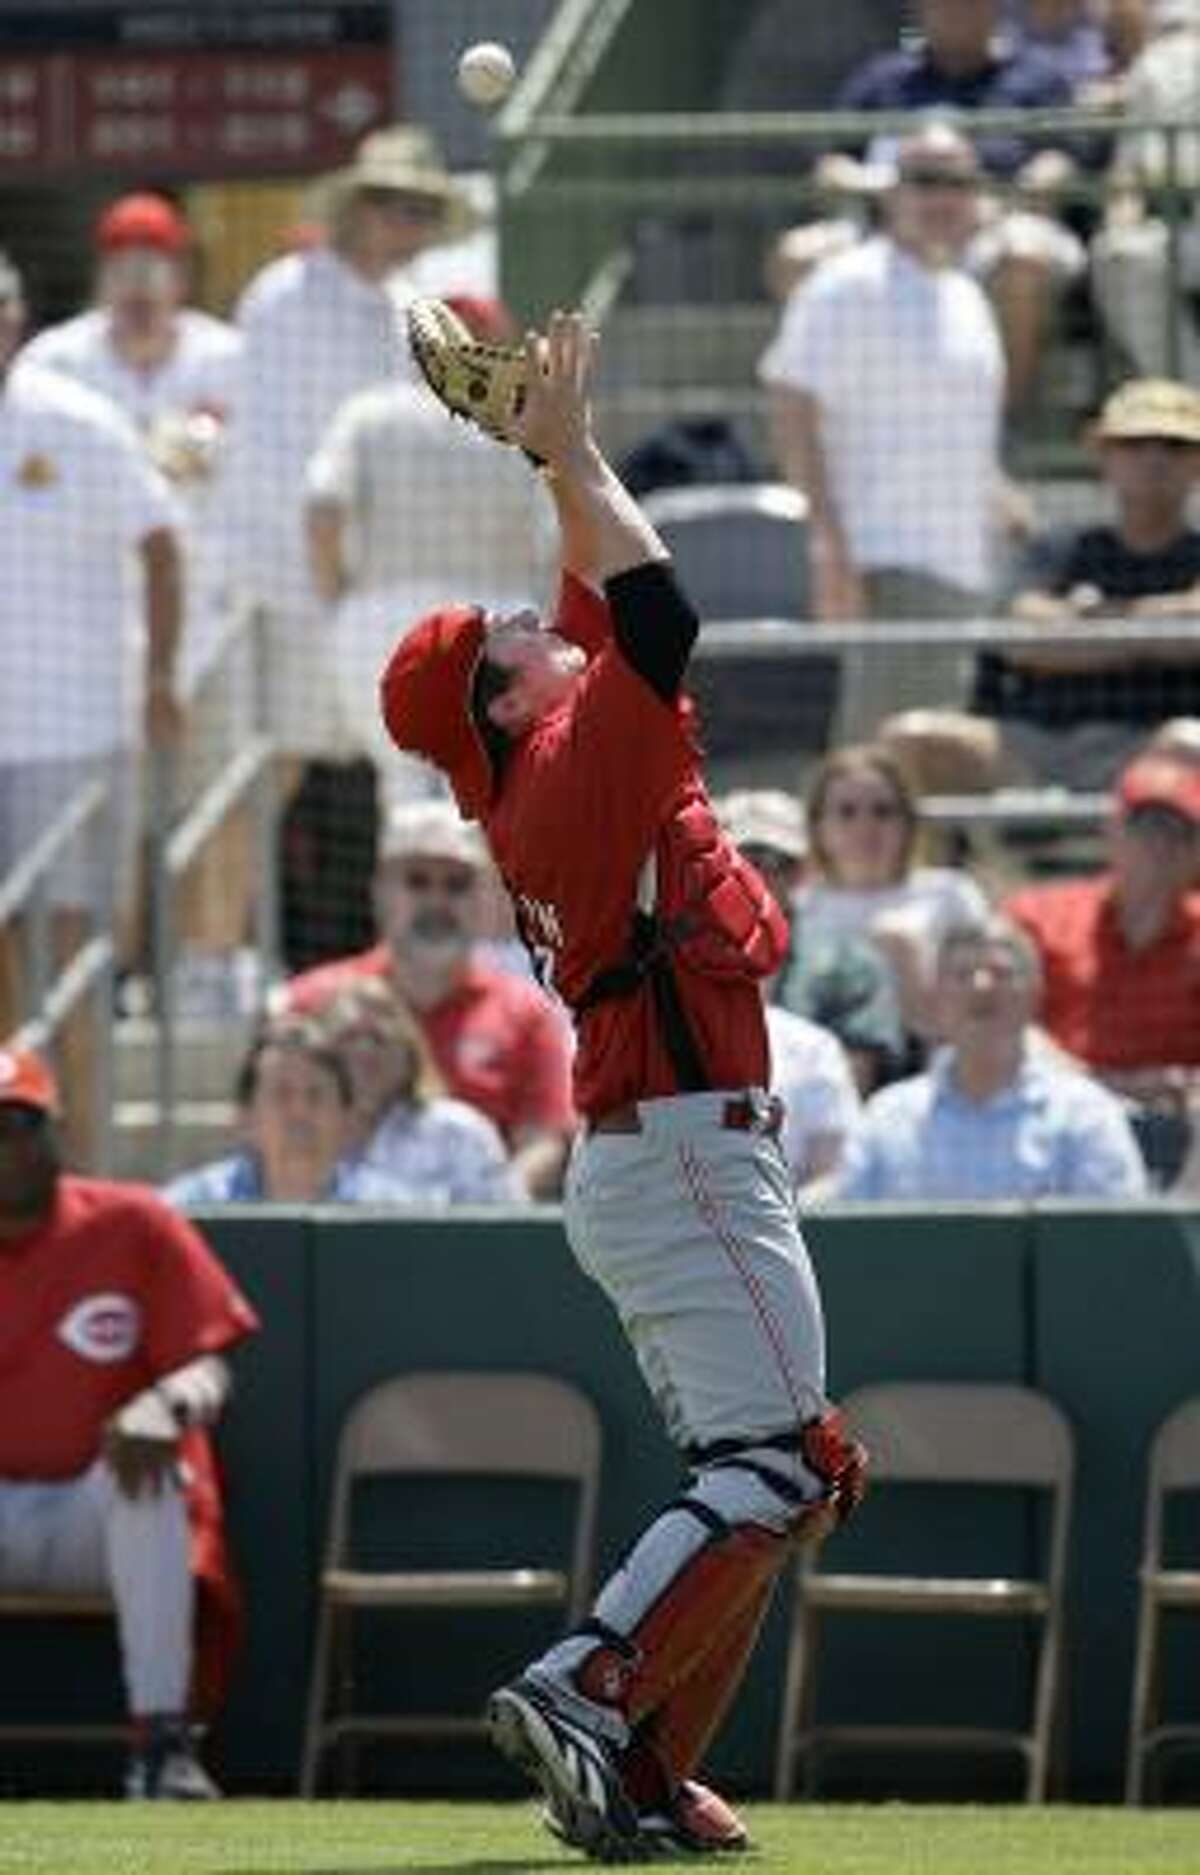 Cincinnati Reds catcher Ryan Hanigan catches a ball in foul territory hit by Astros shortstop Miguel Tejada during the second inning.